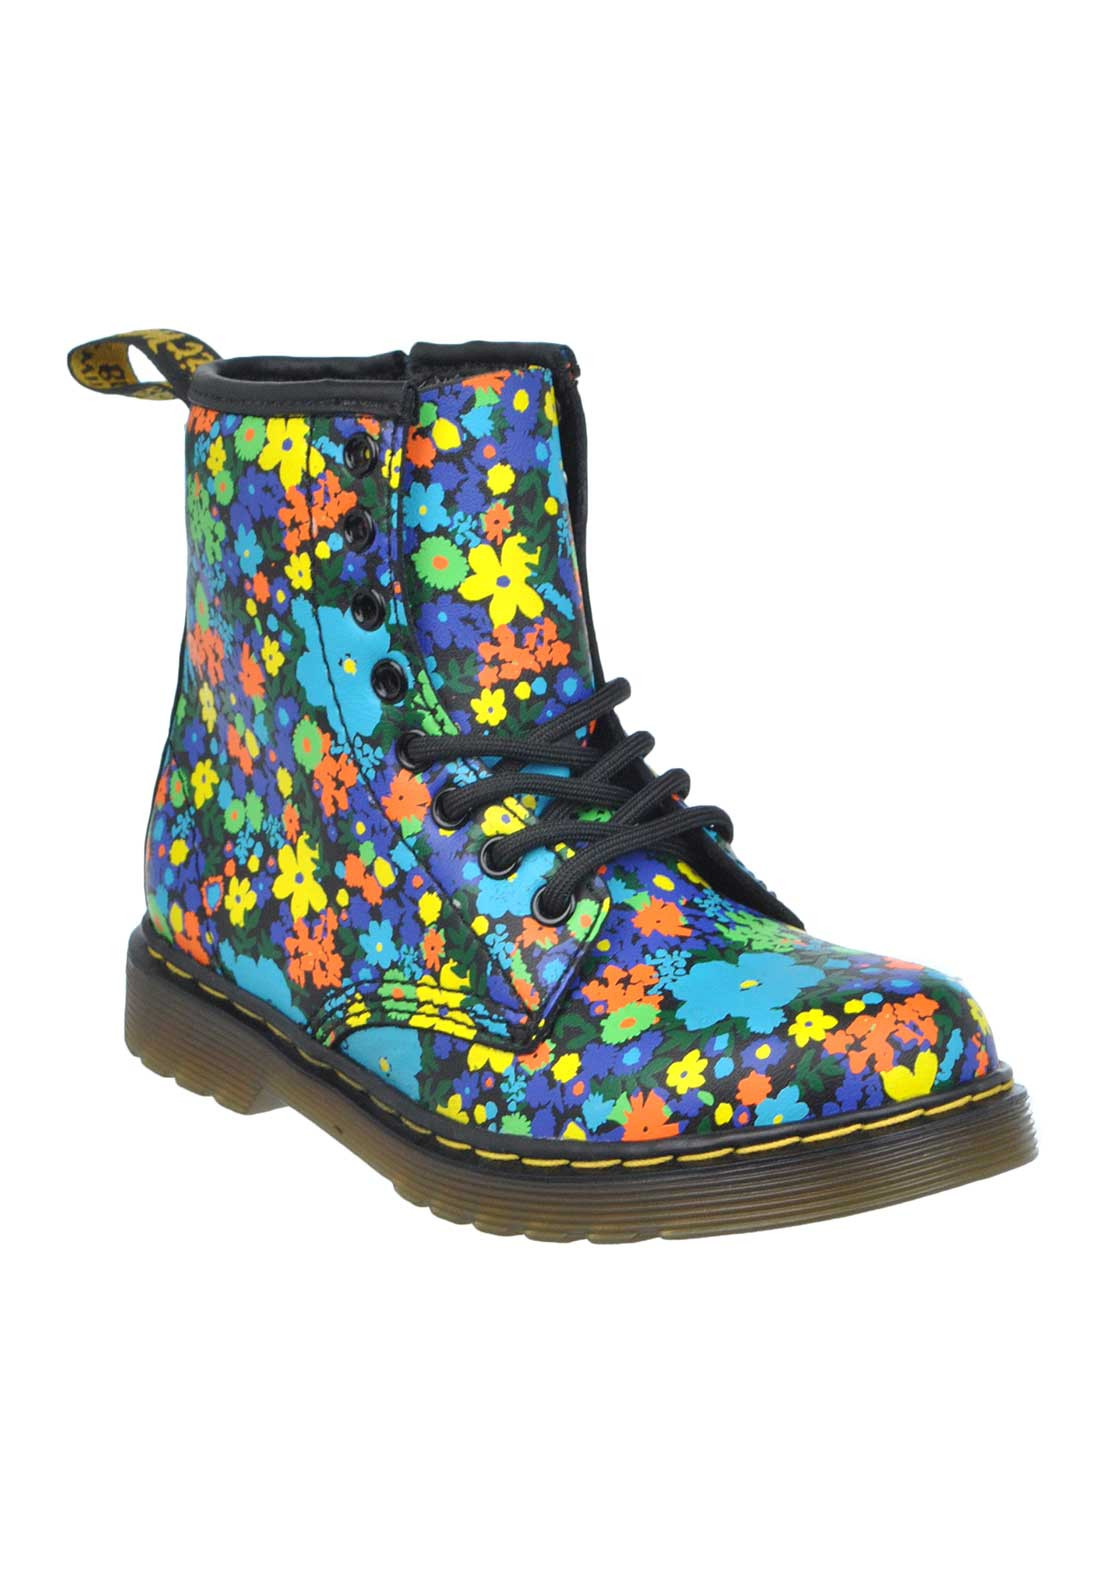 Dr. Martens AirWair Baby Floral Print Leather Boots, Multi-Coloured